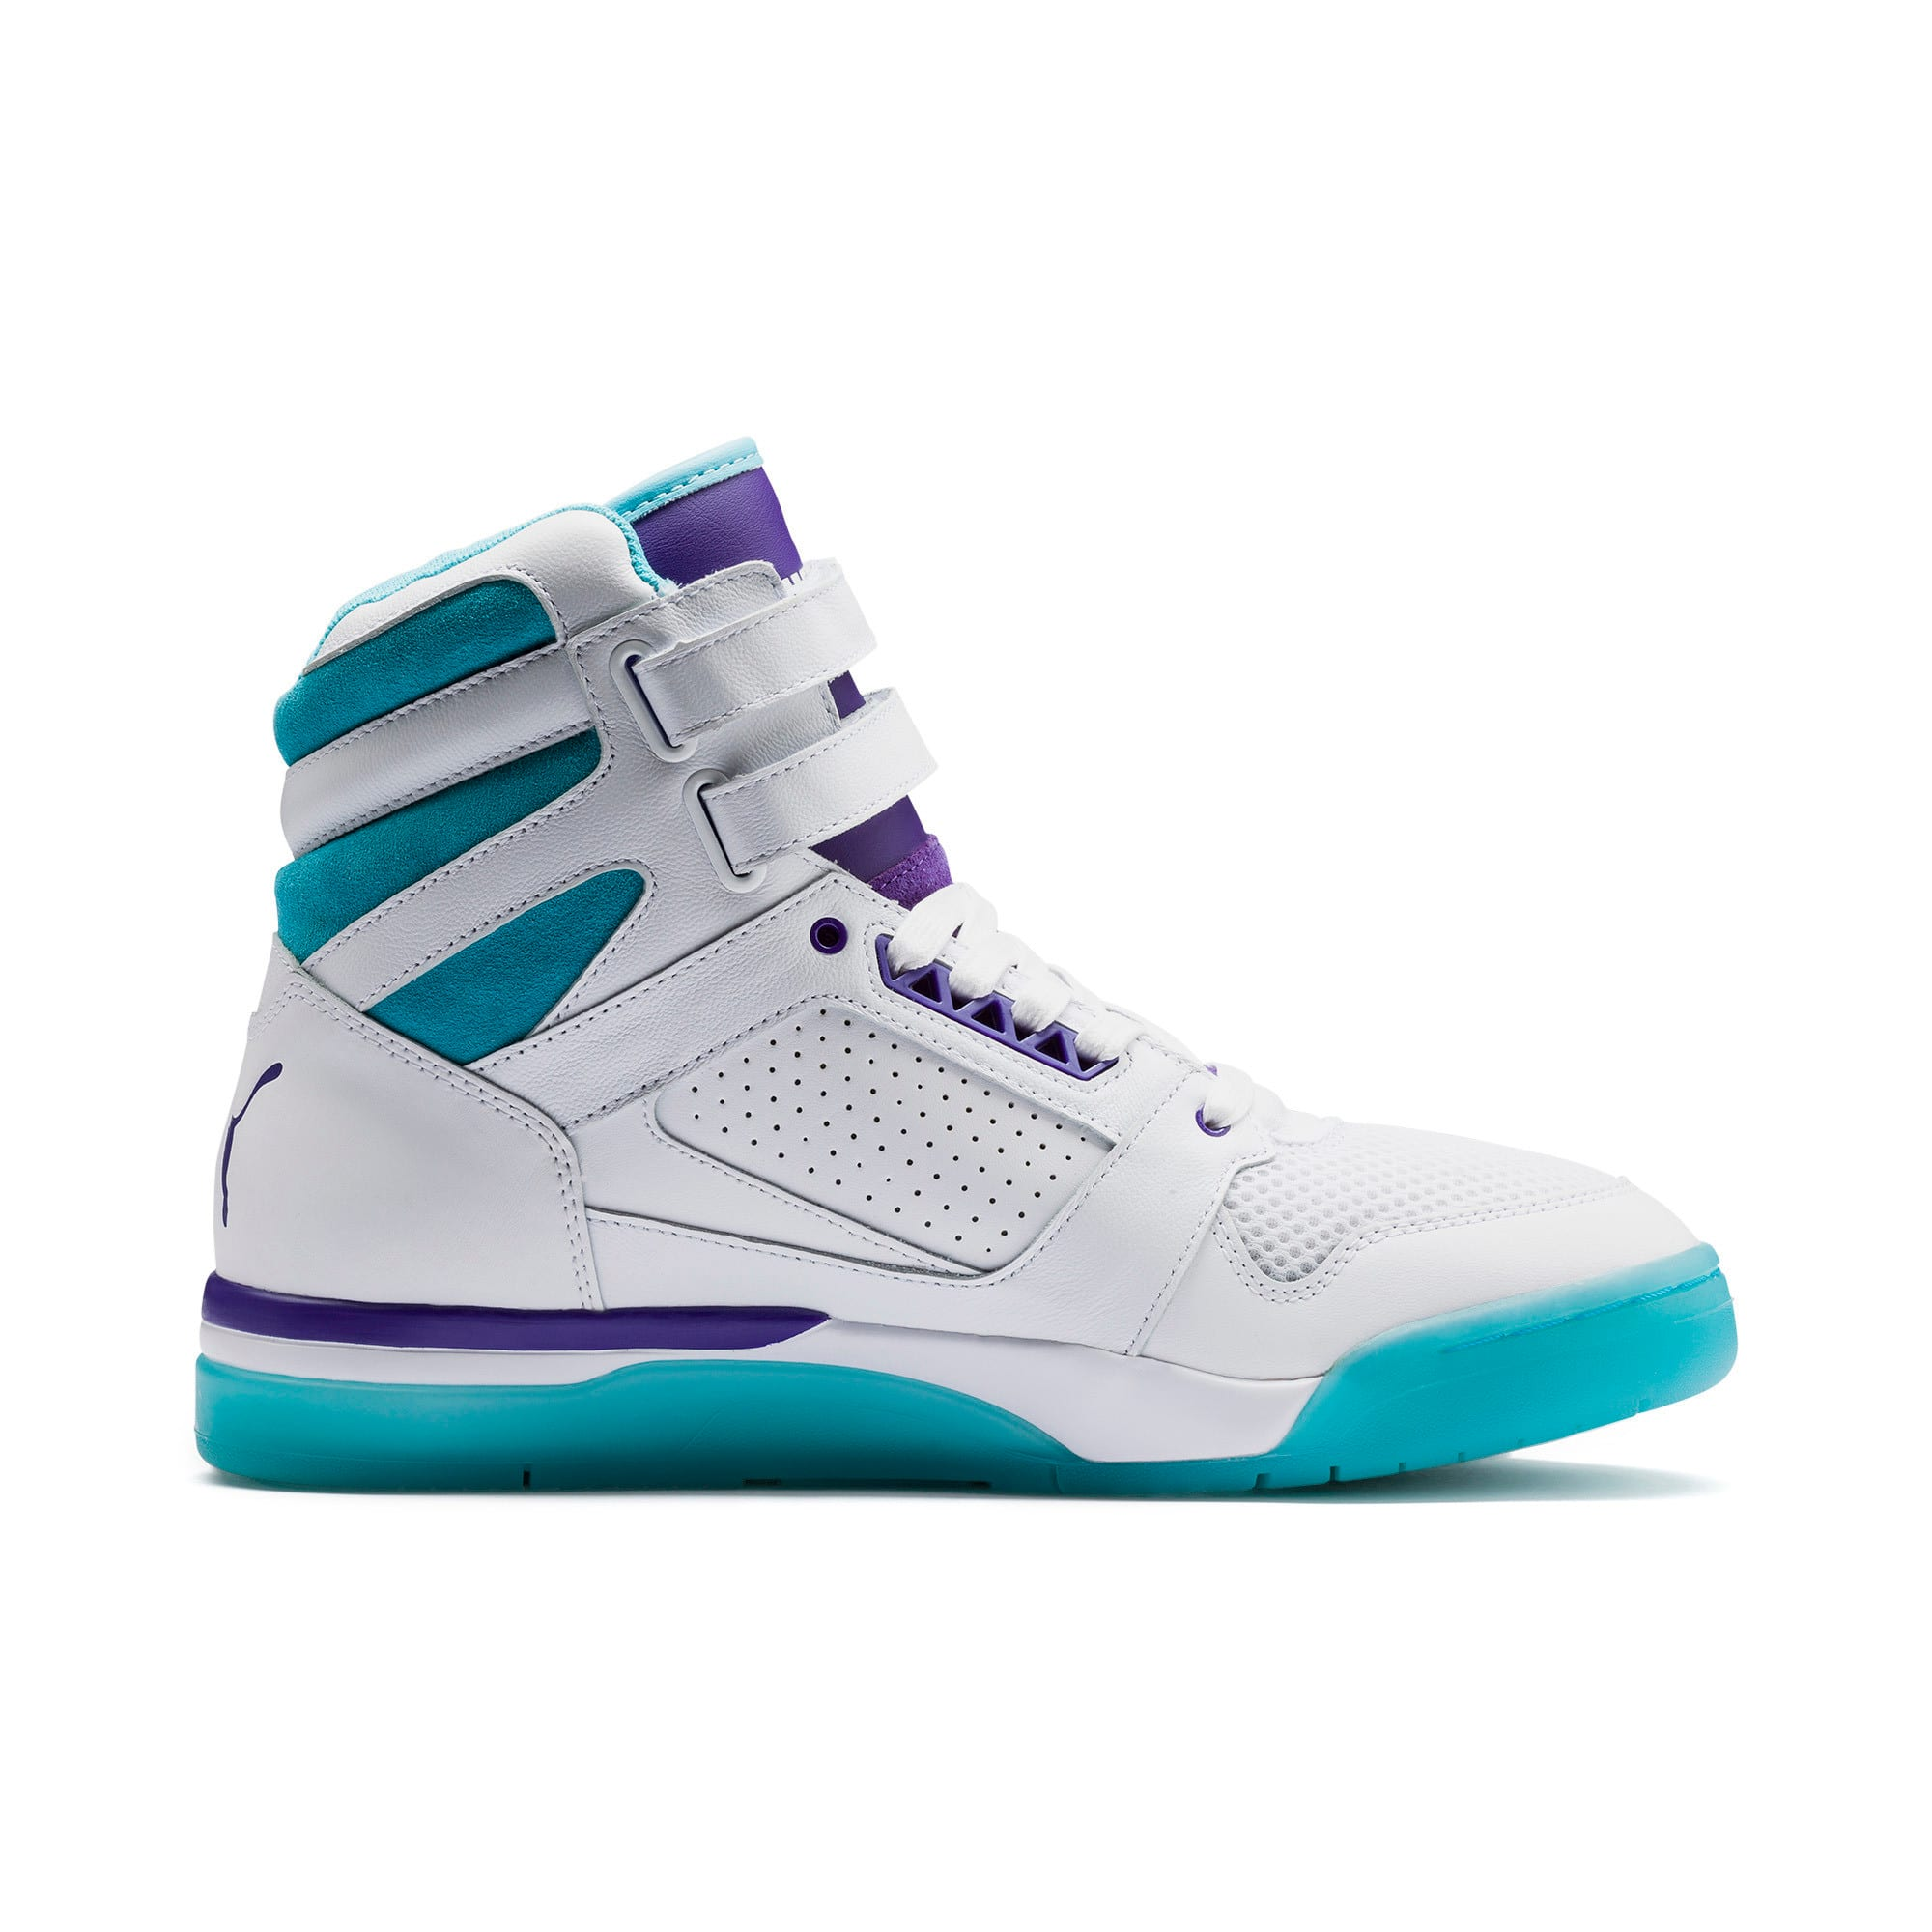 Thumbnail 5 of Palace Guard Mid Queen City Sneakers, Puma White-Blue Atoll, medium